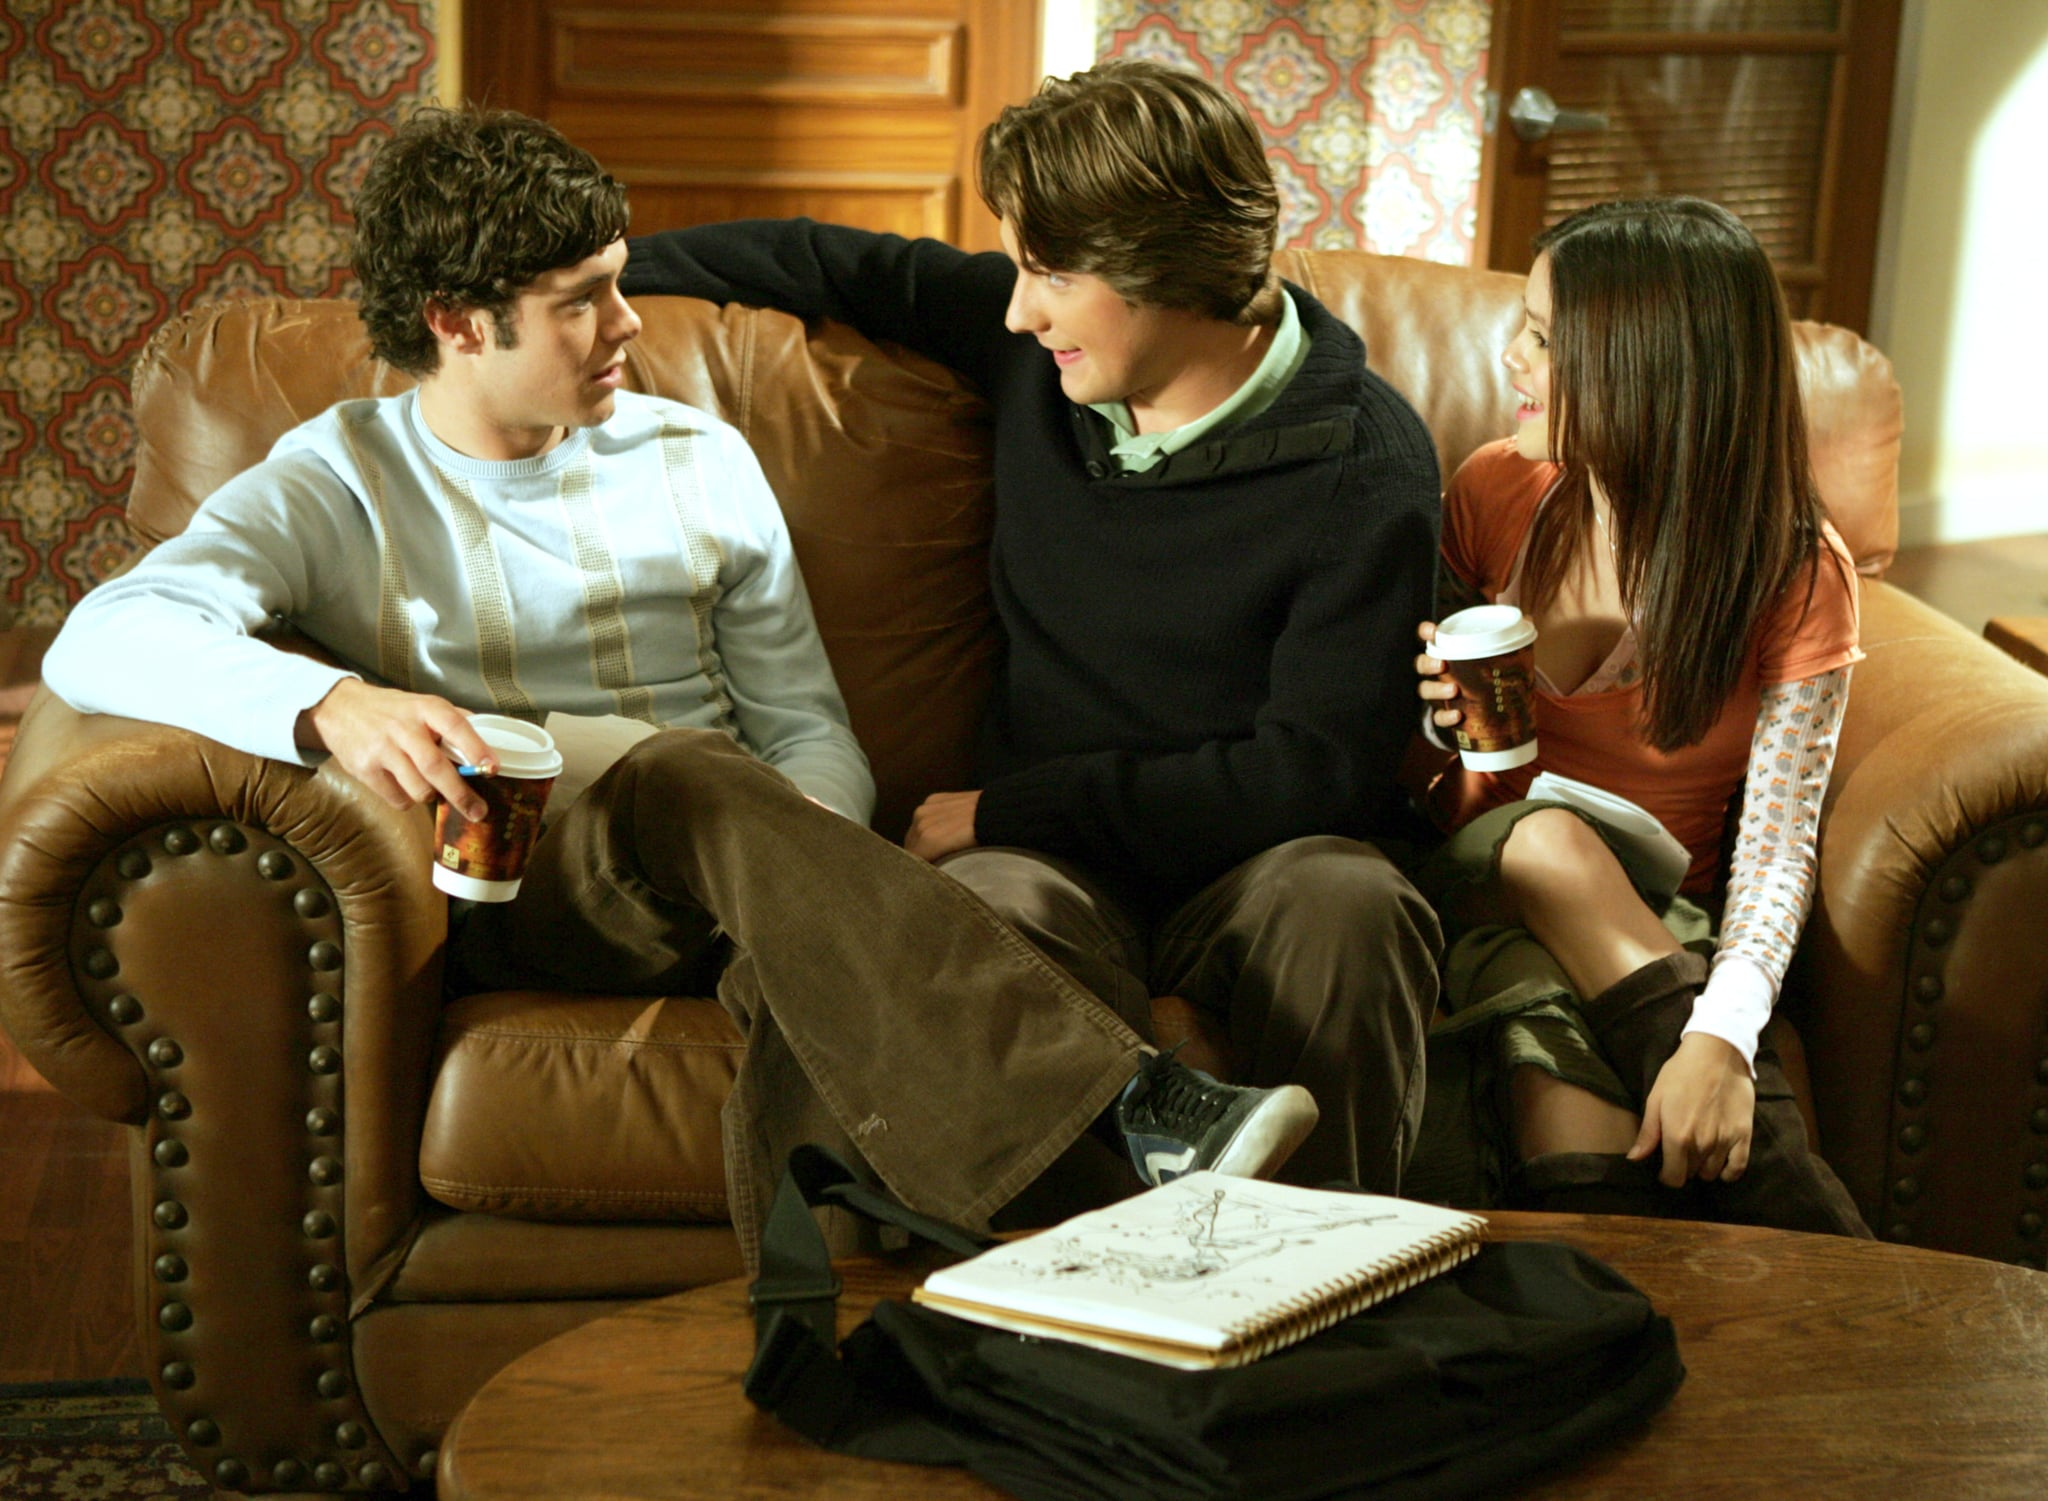 THE O.C., Adam Brody, Michael Cassidy, Rachel Bilson, 'The Second Chance', (Season 2, ep. #211), 2003-2007.  WB / Courtesy: Everett Collection